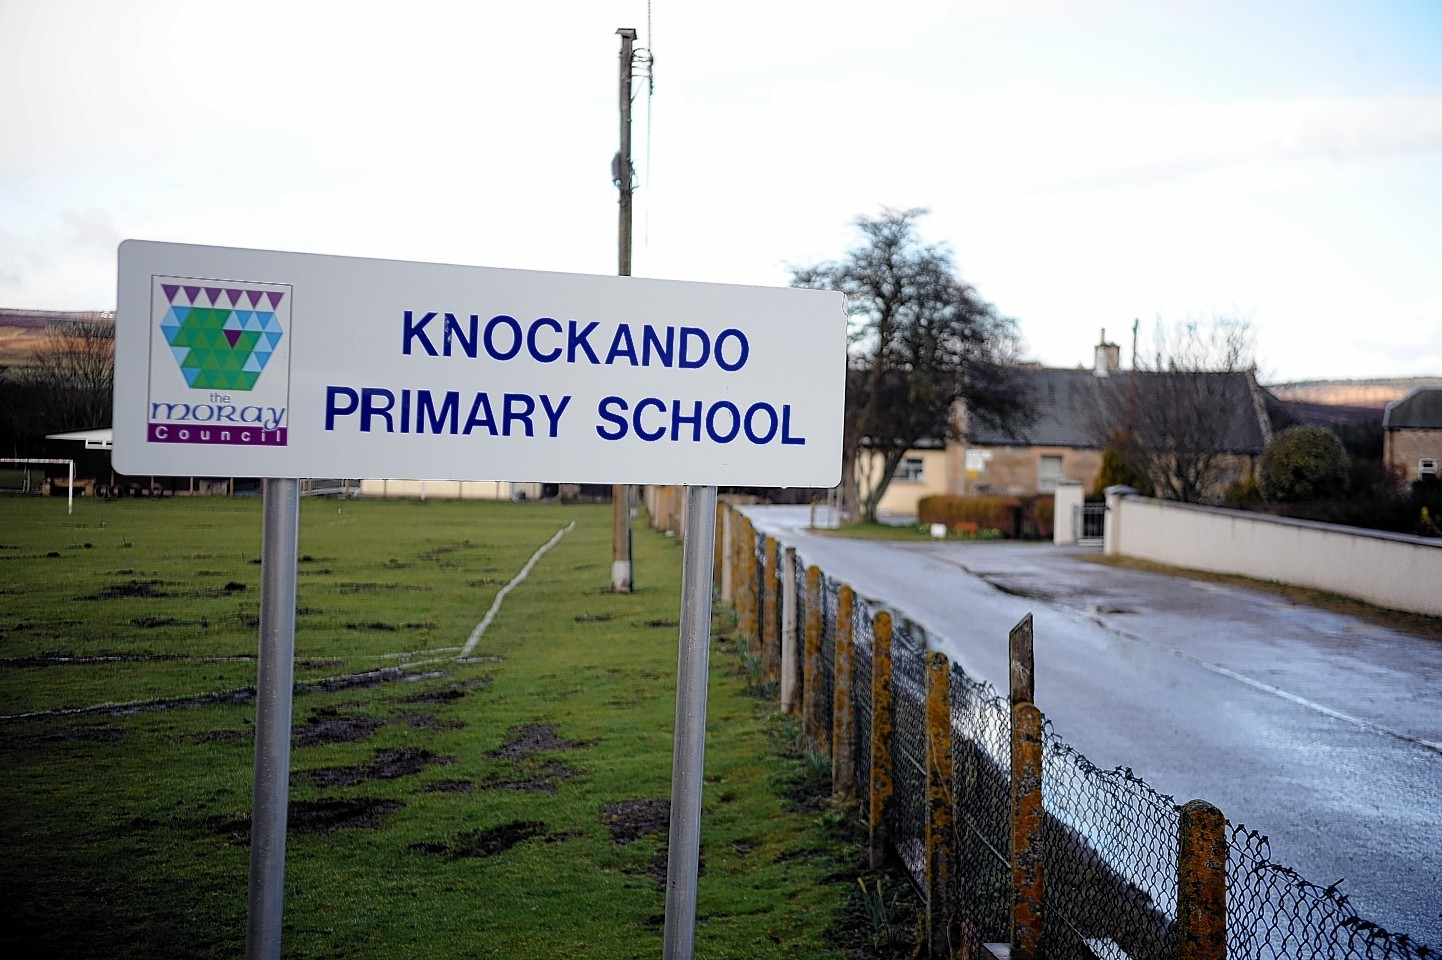 Knockando Primary School